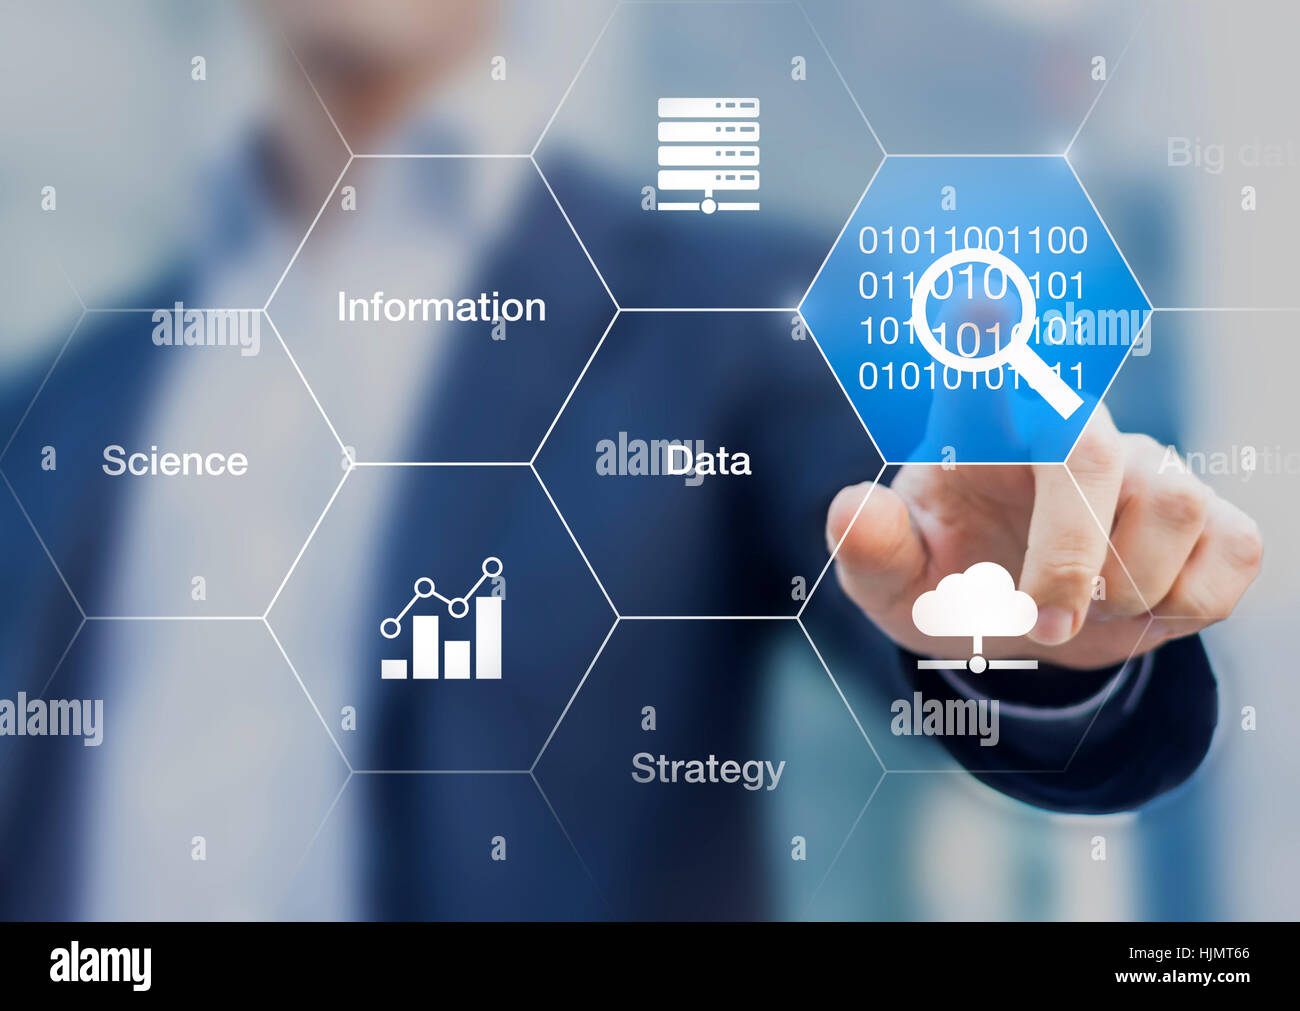 Data technology concept with words and icons about strategy, science, information, analytics and innovation - Stock Image